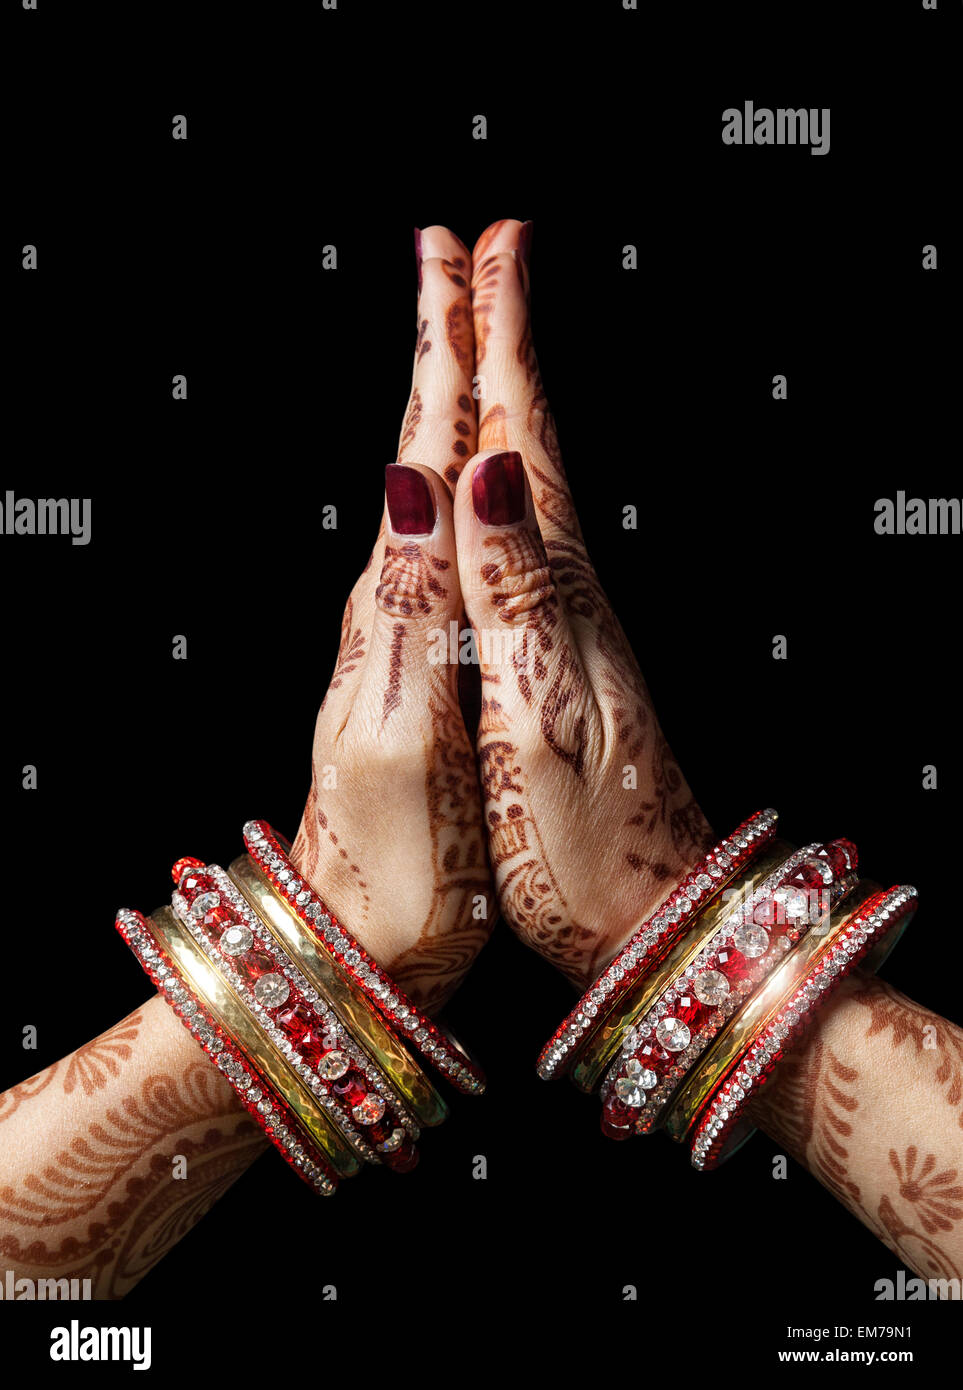 Woman hands with henna in Namaste mudra on black background - Stock Image